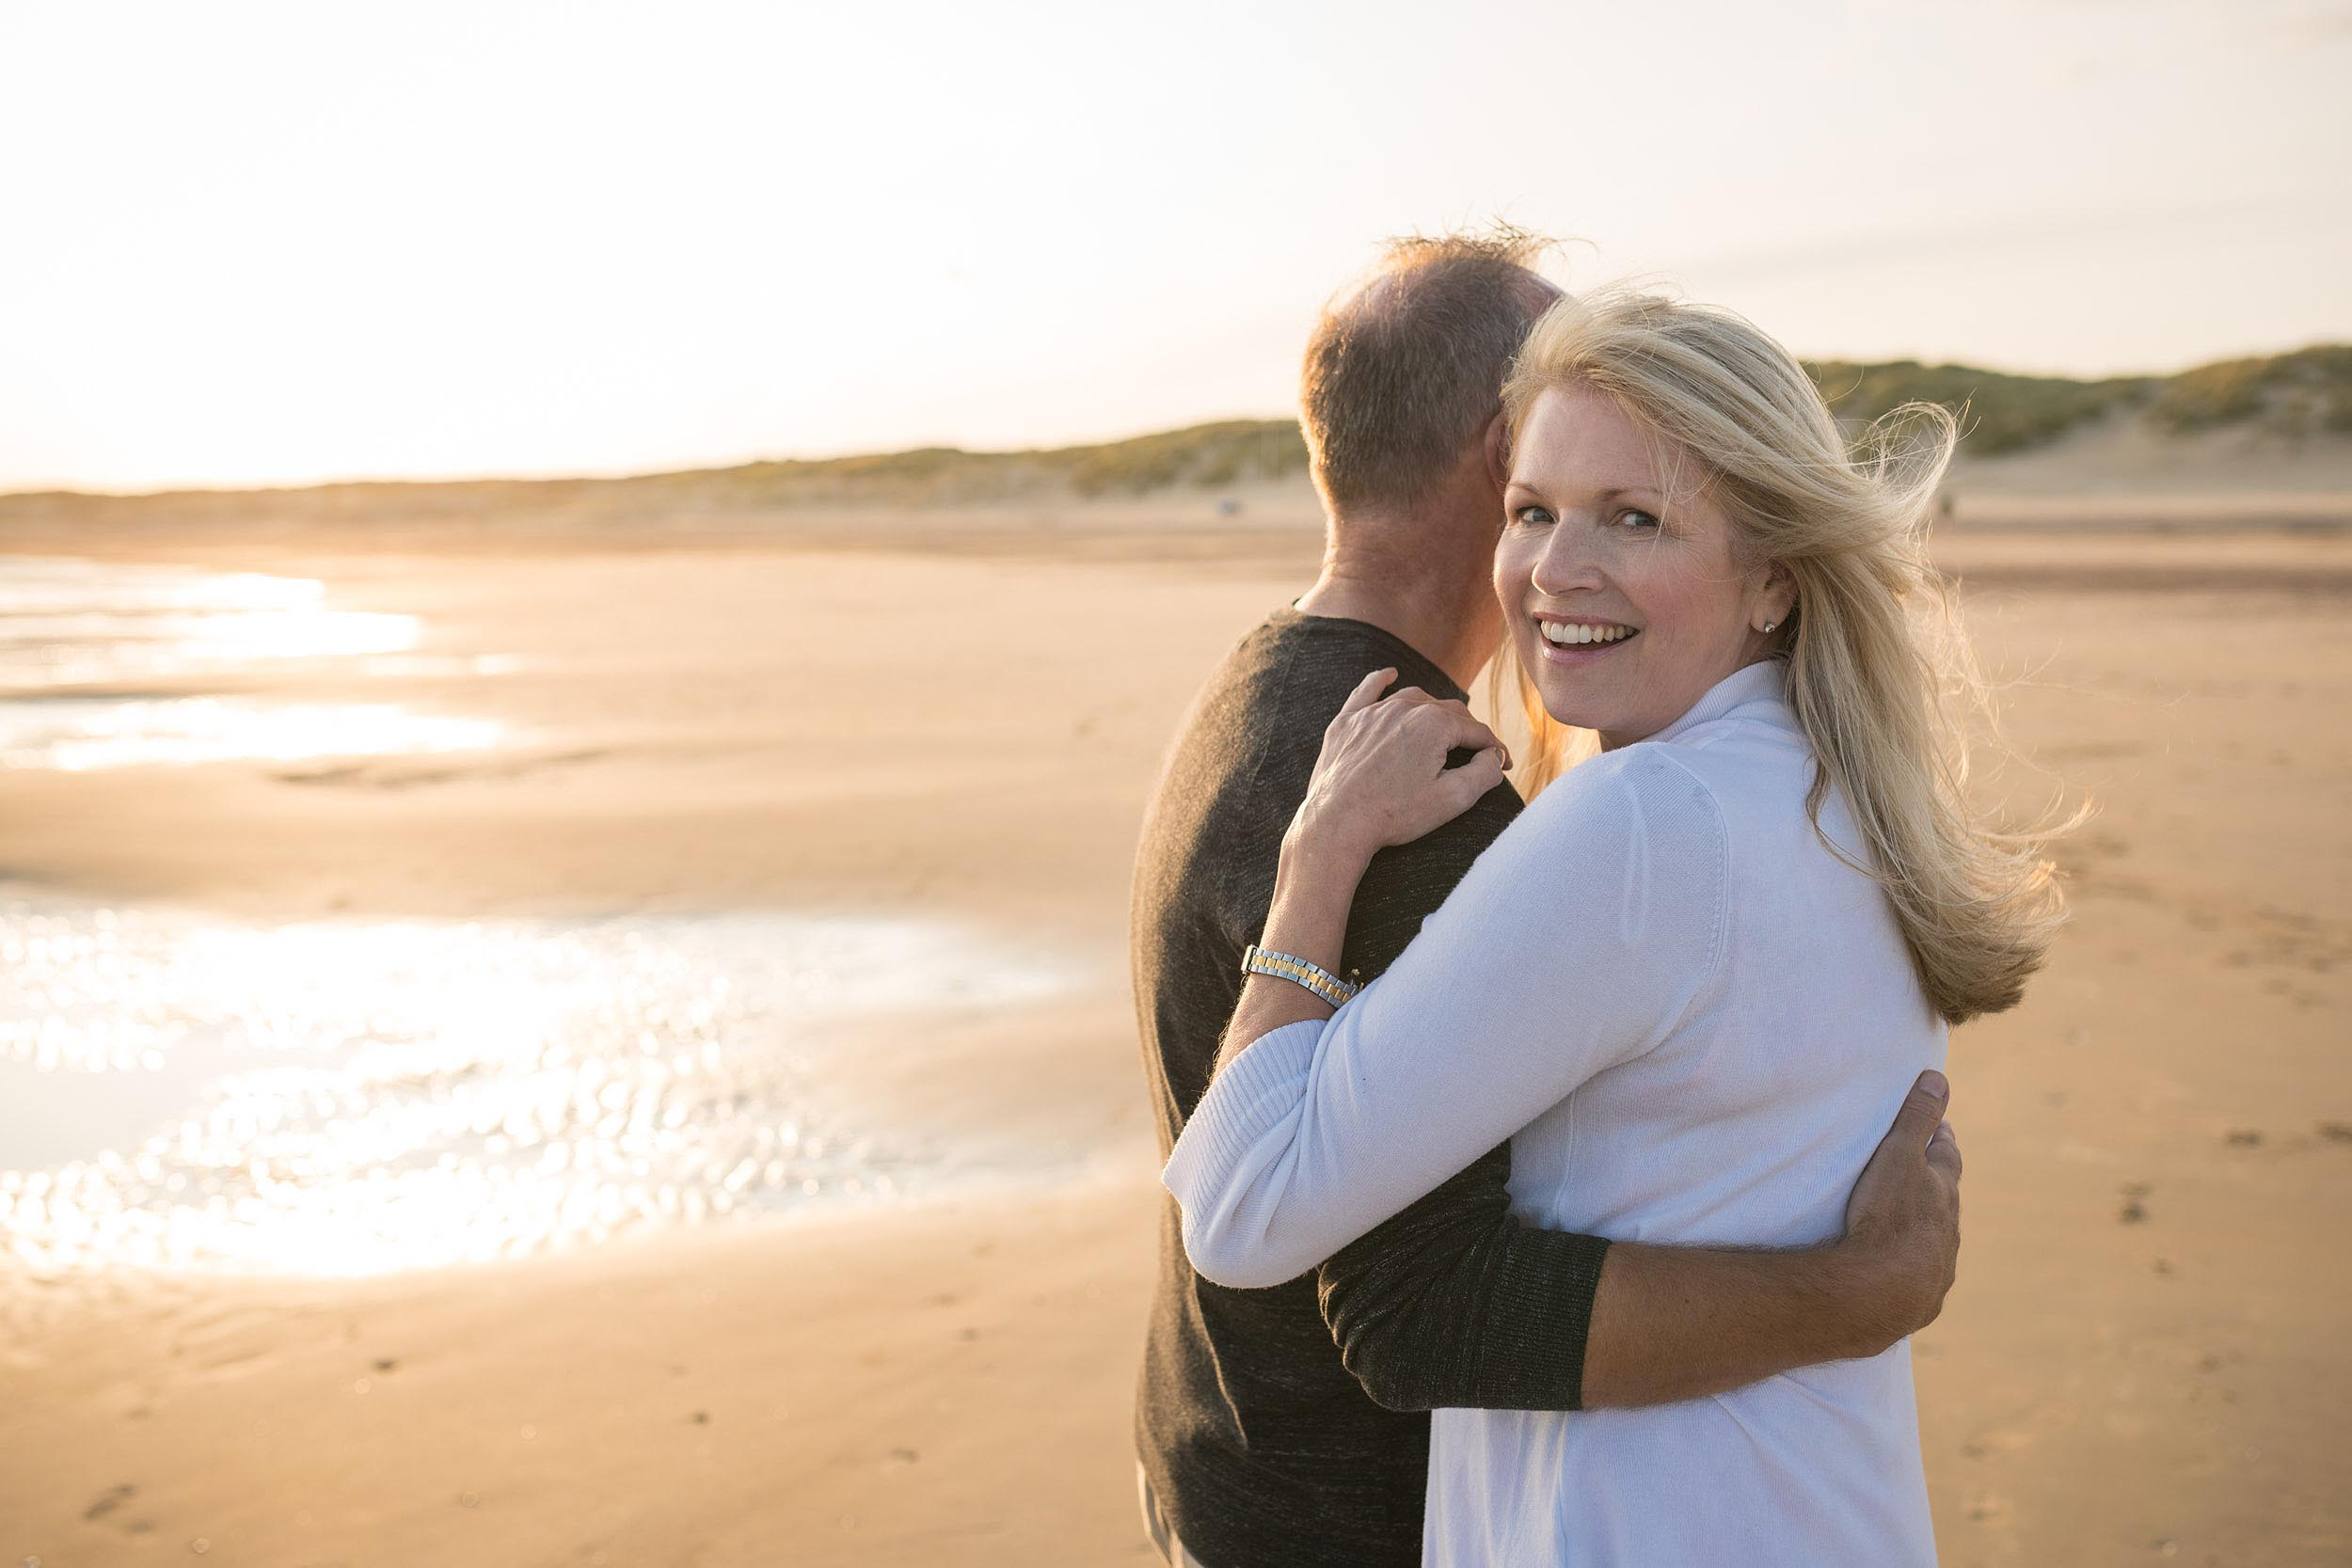 beach-couple-senior-real-people-lifestyle-photographer-london